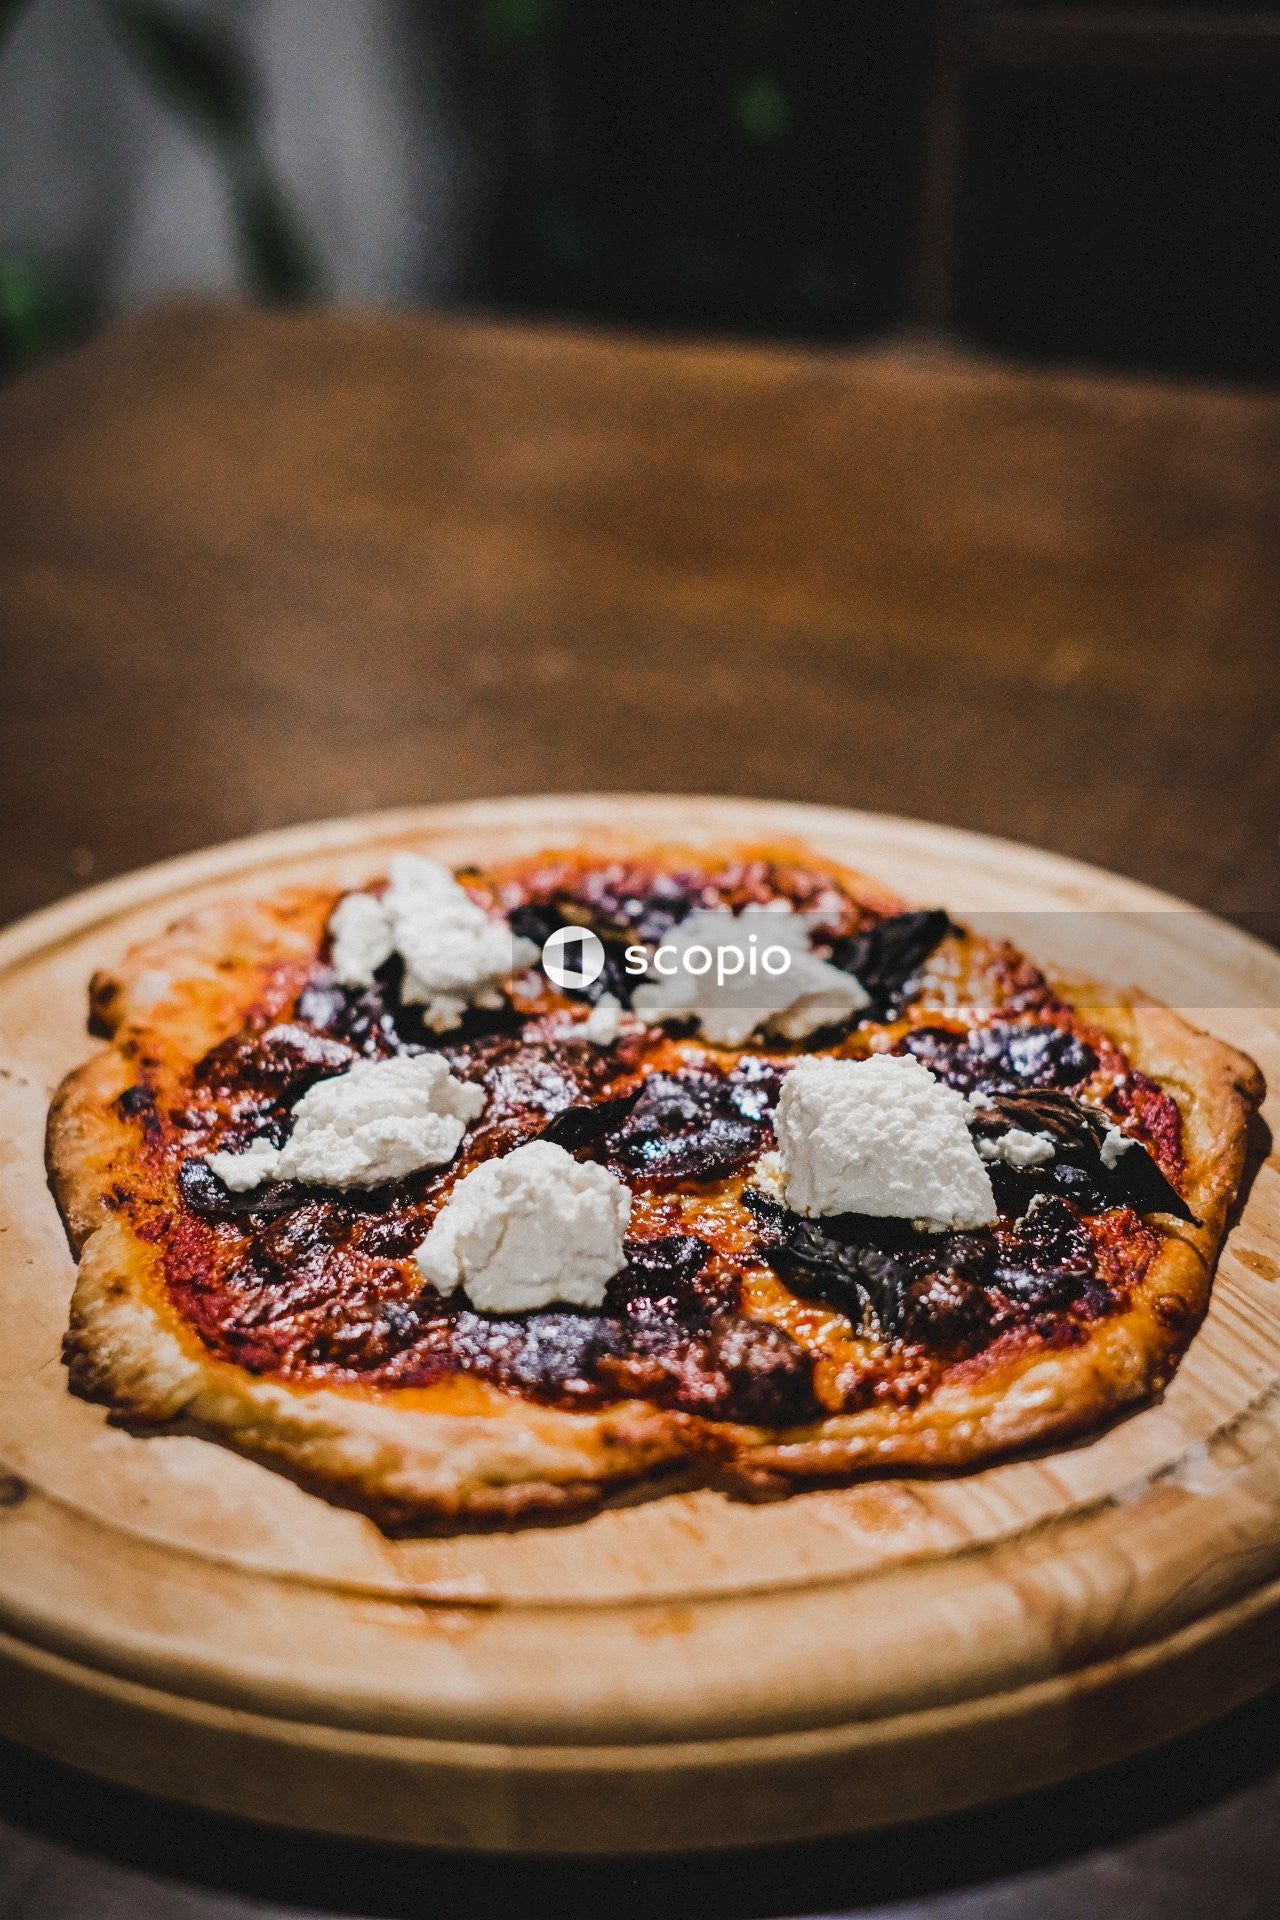 Pizza with white and black toppings on brown wooden table